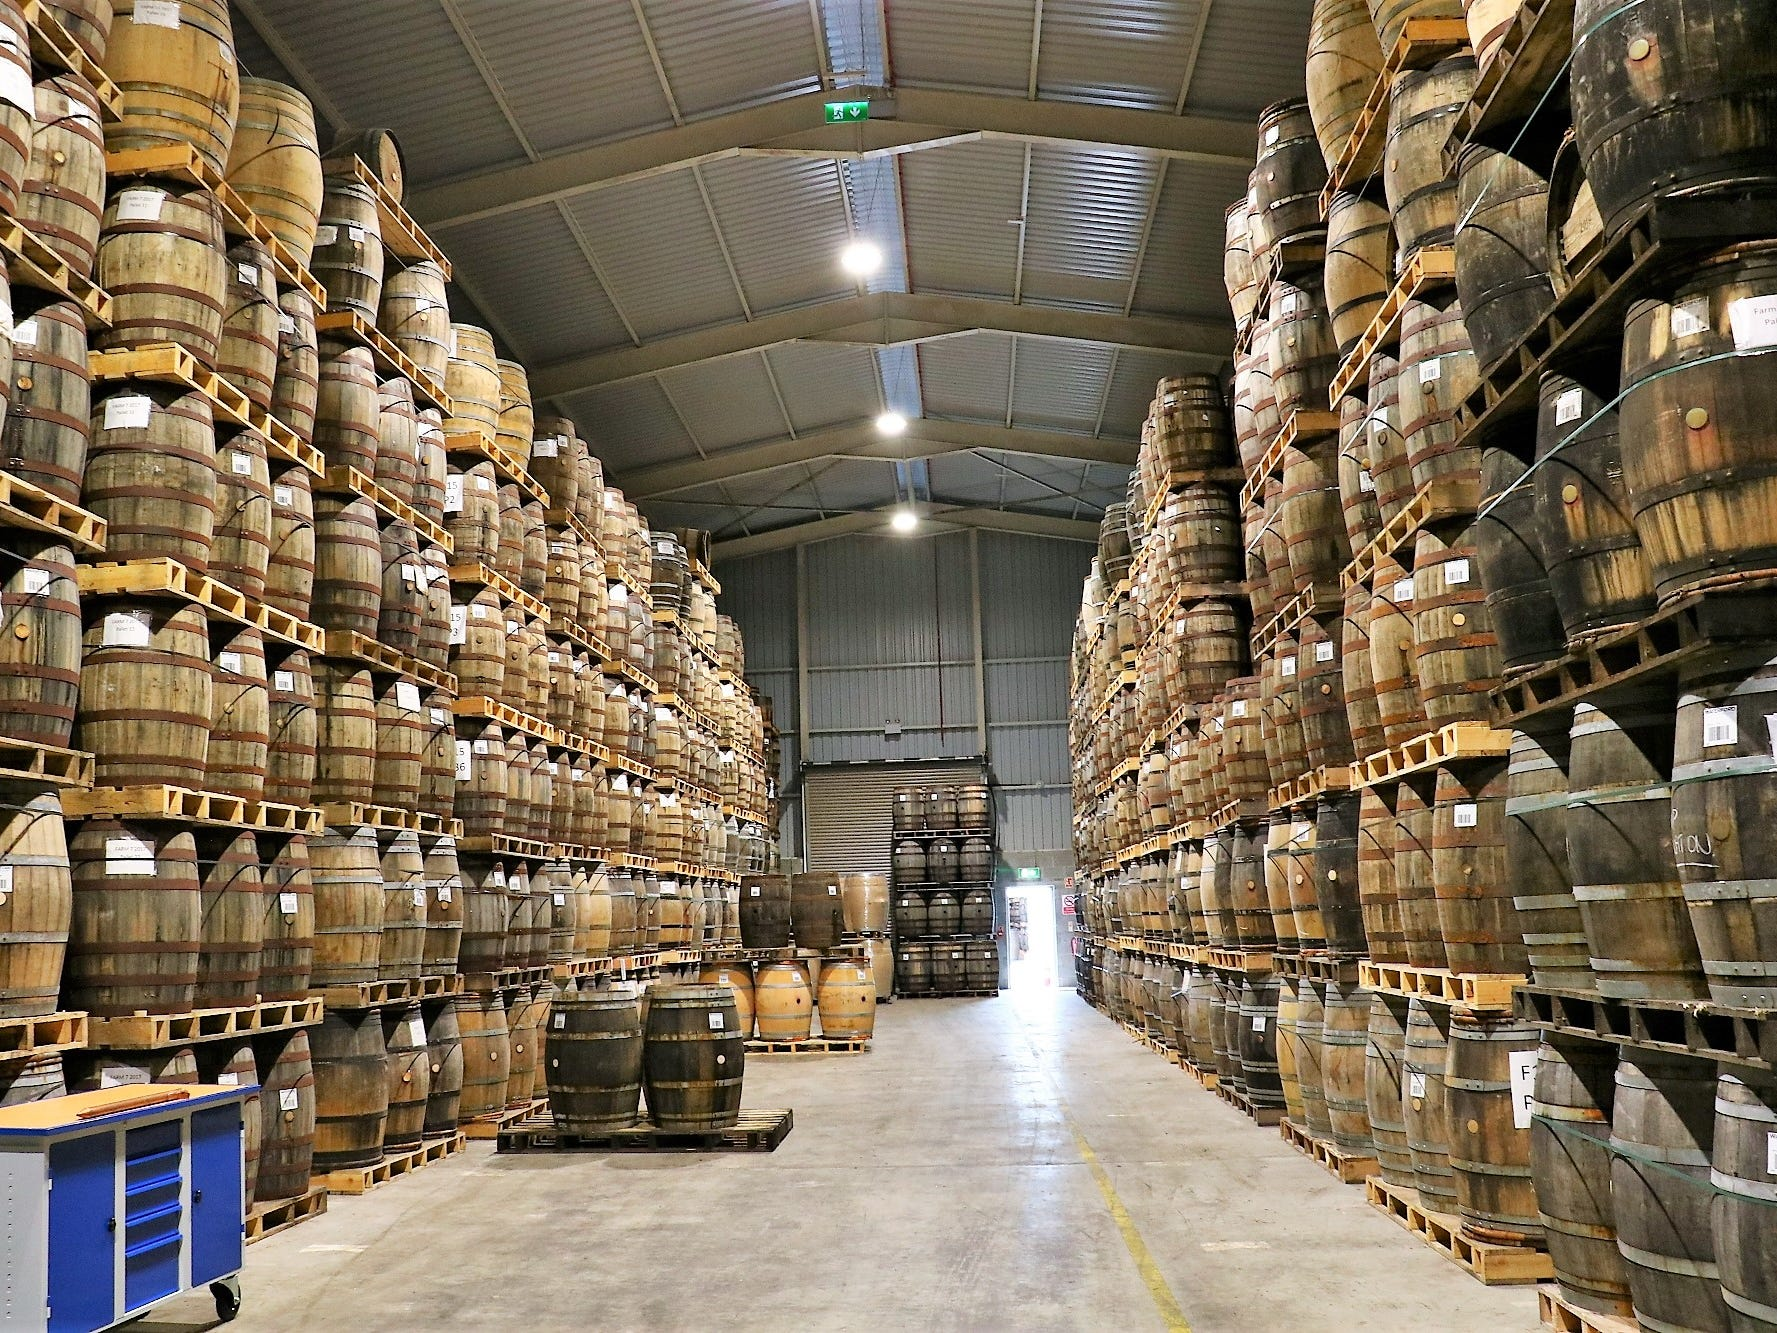 Waterford has amassed a total of approximately 19,000 casks. Each warehouse is designed to hold 7,000, and several new warehouses are currently under construction. The distillery uses a precise ratio of barrels for each batch of spirit: 50 percent ex-bourbon; 20 percent virgin, charred American oak; 15 percent French oak wine casks; and 15 percent ex-Vins Doux Naturels, representing a mix including fortified wines such as sherry, port and Madeira.